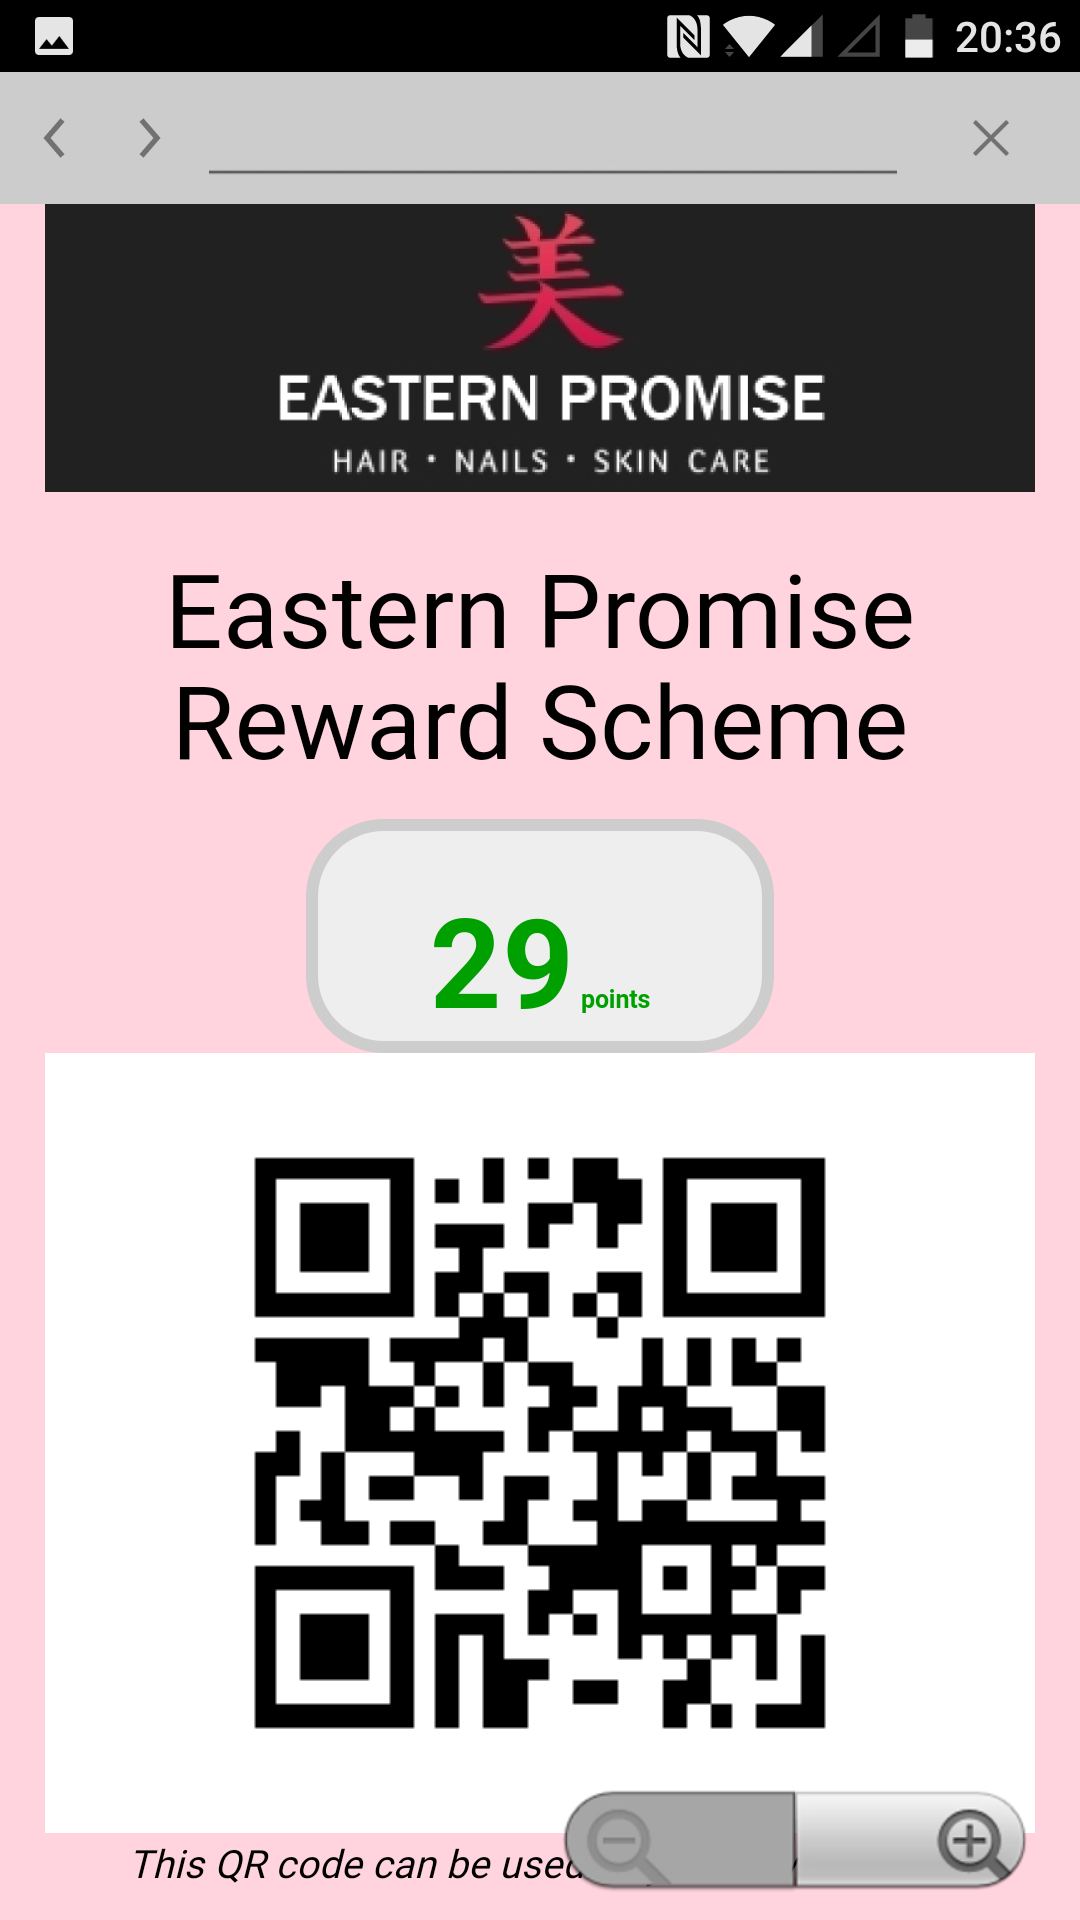 The My Reward Card app